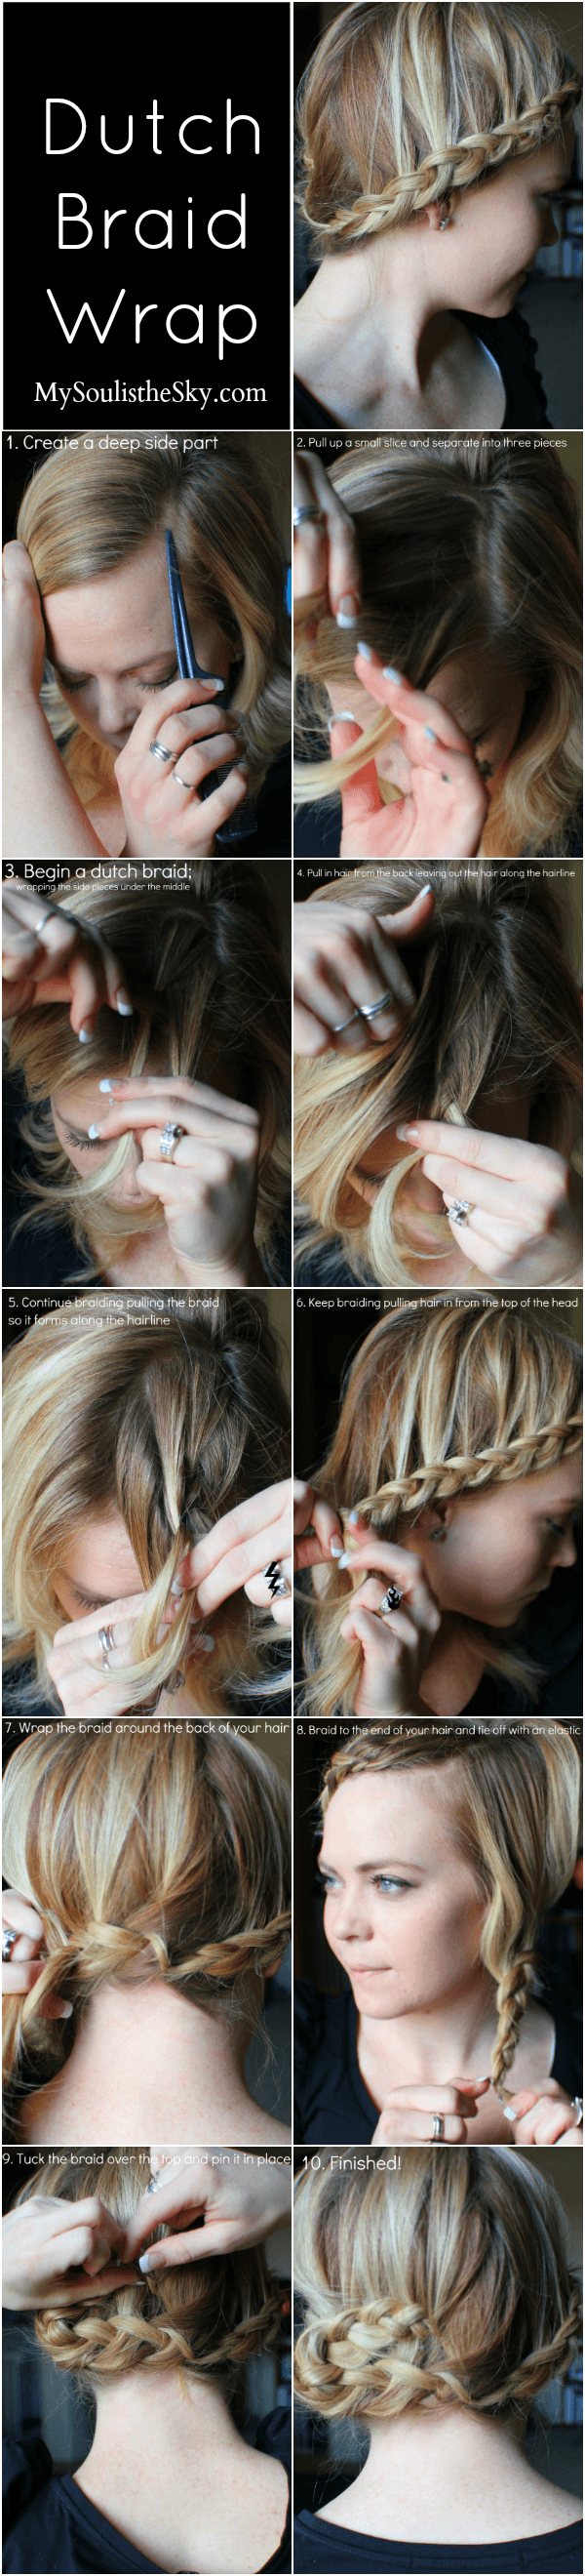 dutch-braid-wrapped-around-head